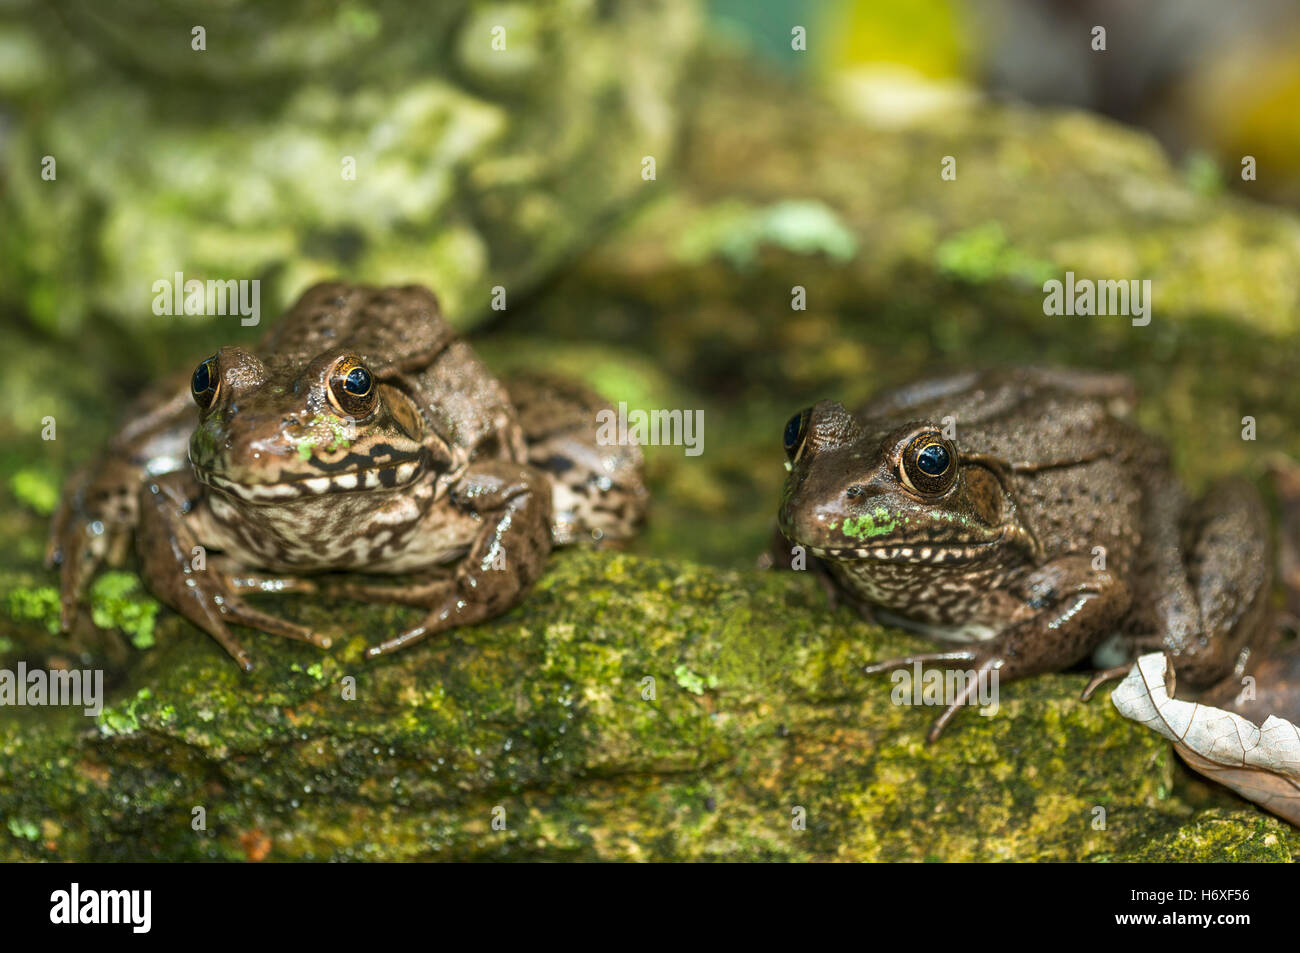 Southern leopard (rana Lithobates sphenocephalus). Tennessee, USA. Immagini Stock